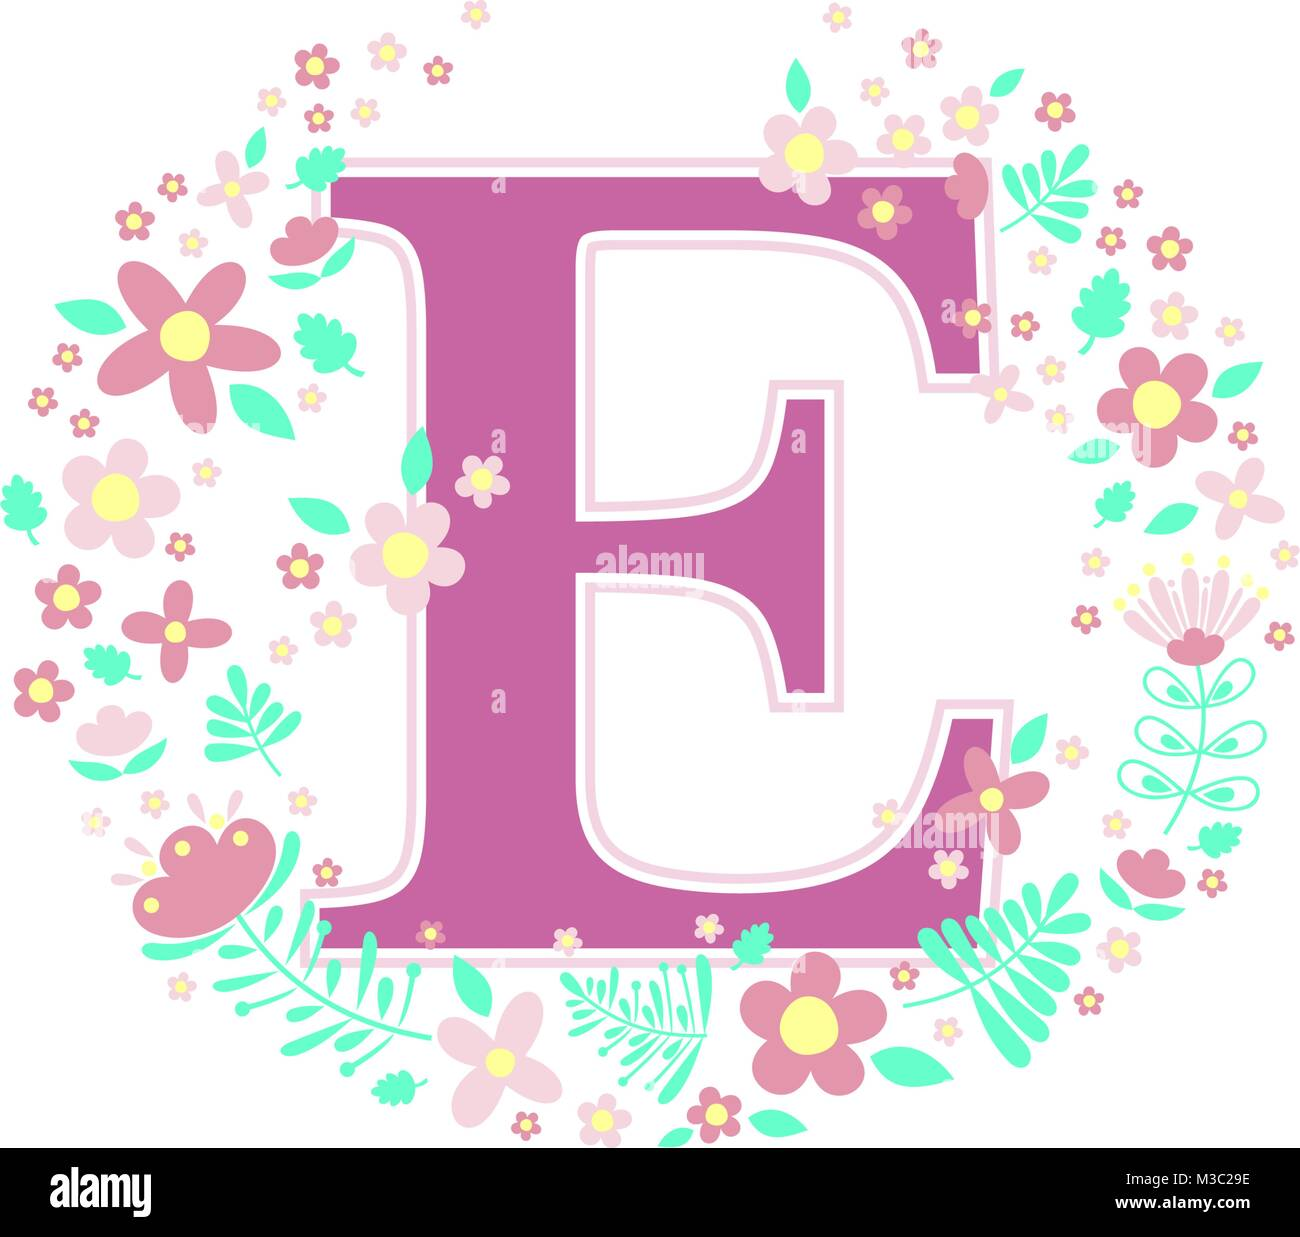 initial letter e with decorative flowers and design elements